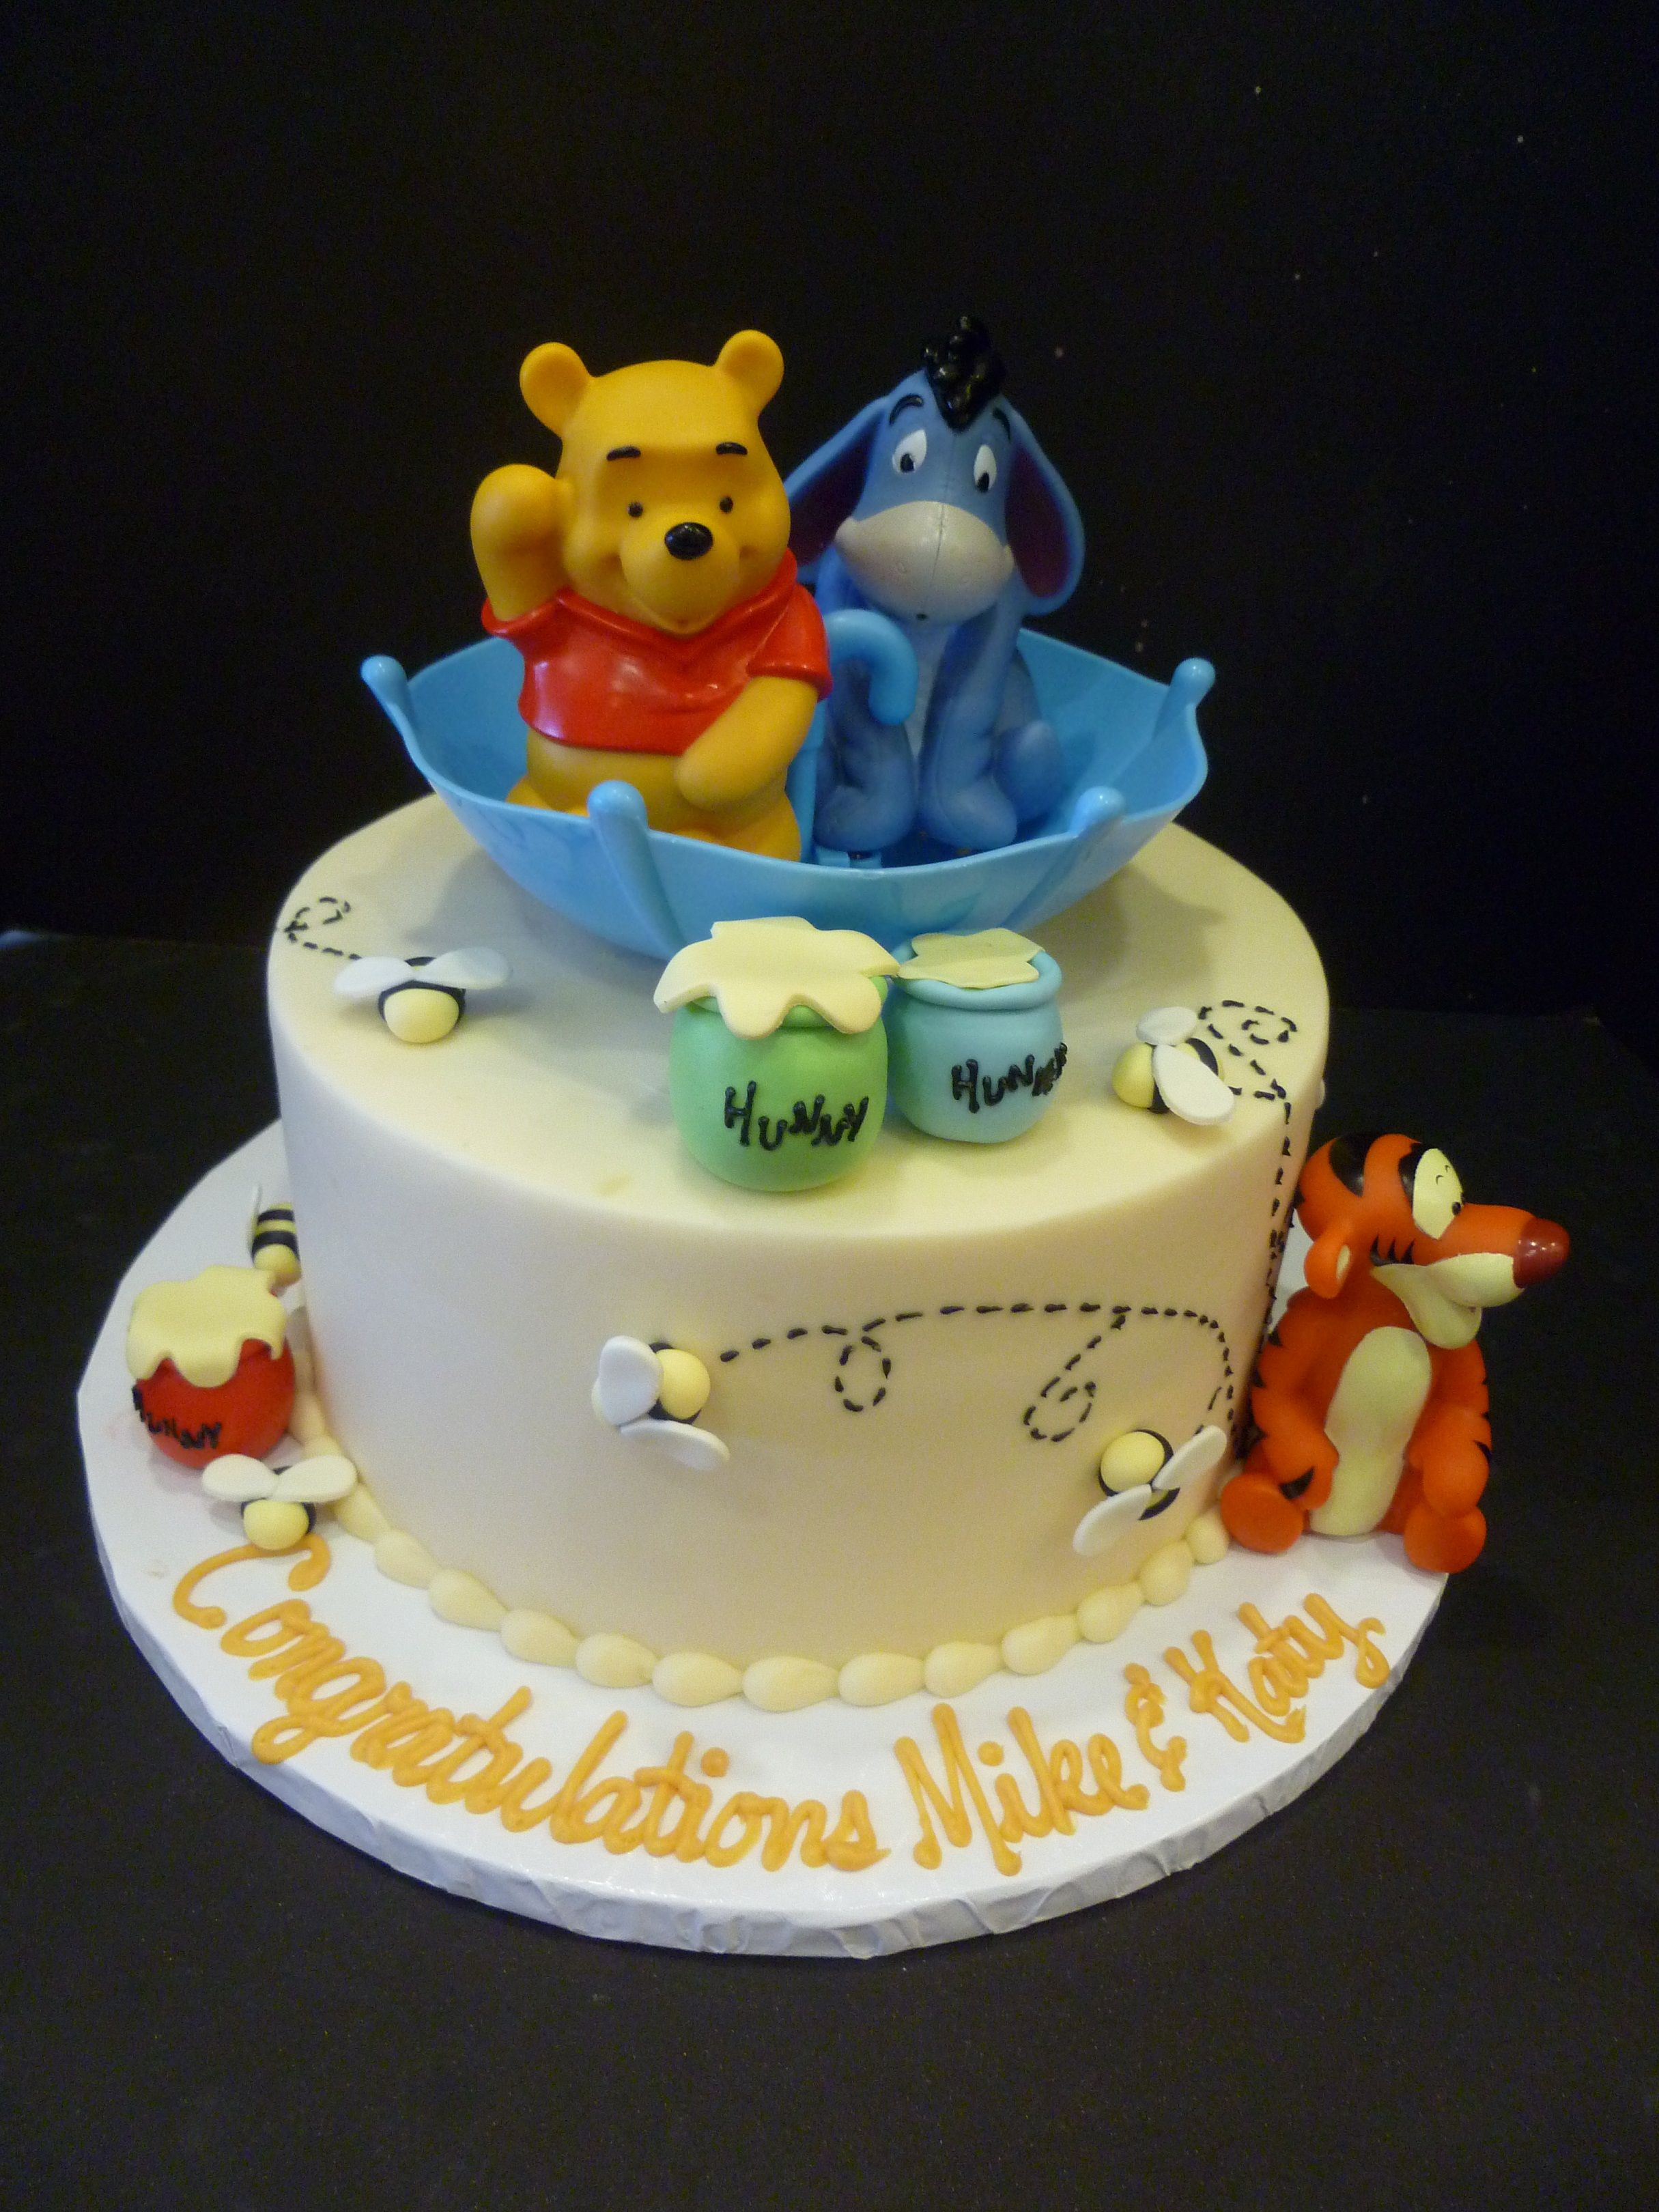 Beautiful Image Detail For -Winnie+The+Pooh+Baby+Shower+Cake - Winnie The Pooh pertaining to Winnie The Pooh Baby Shower Cakes